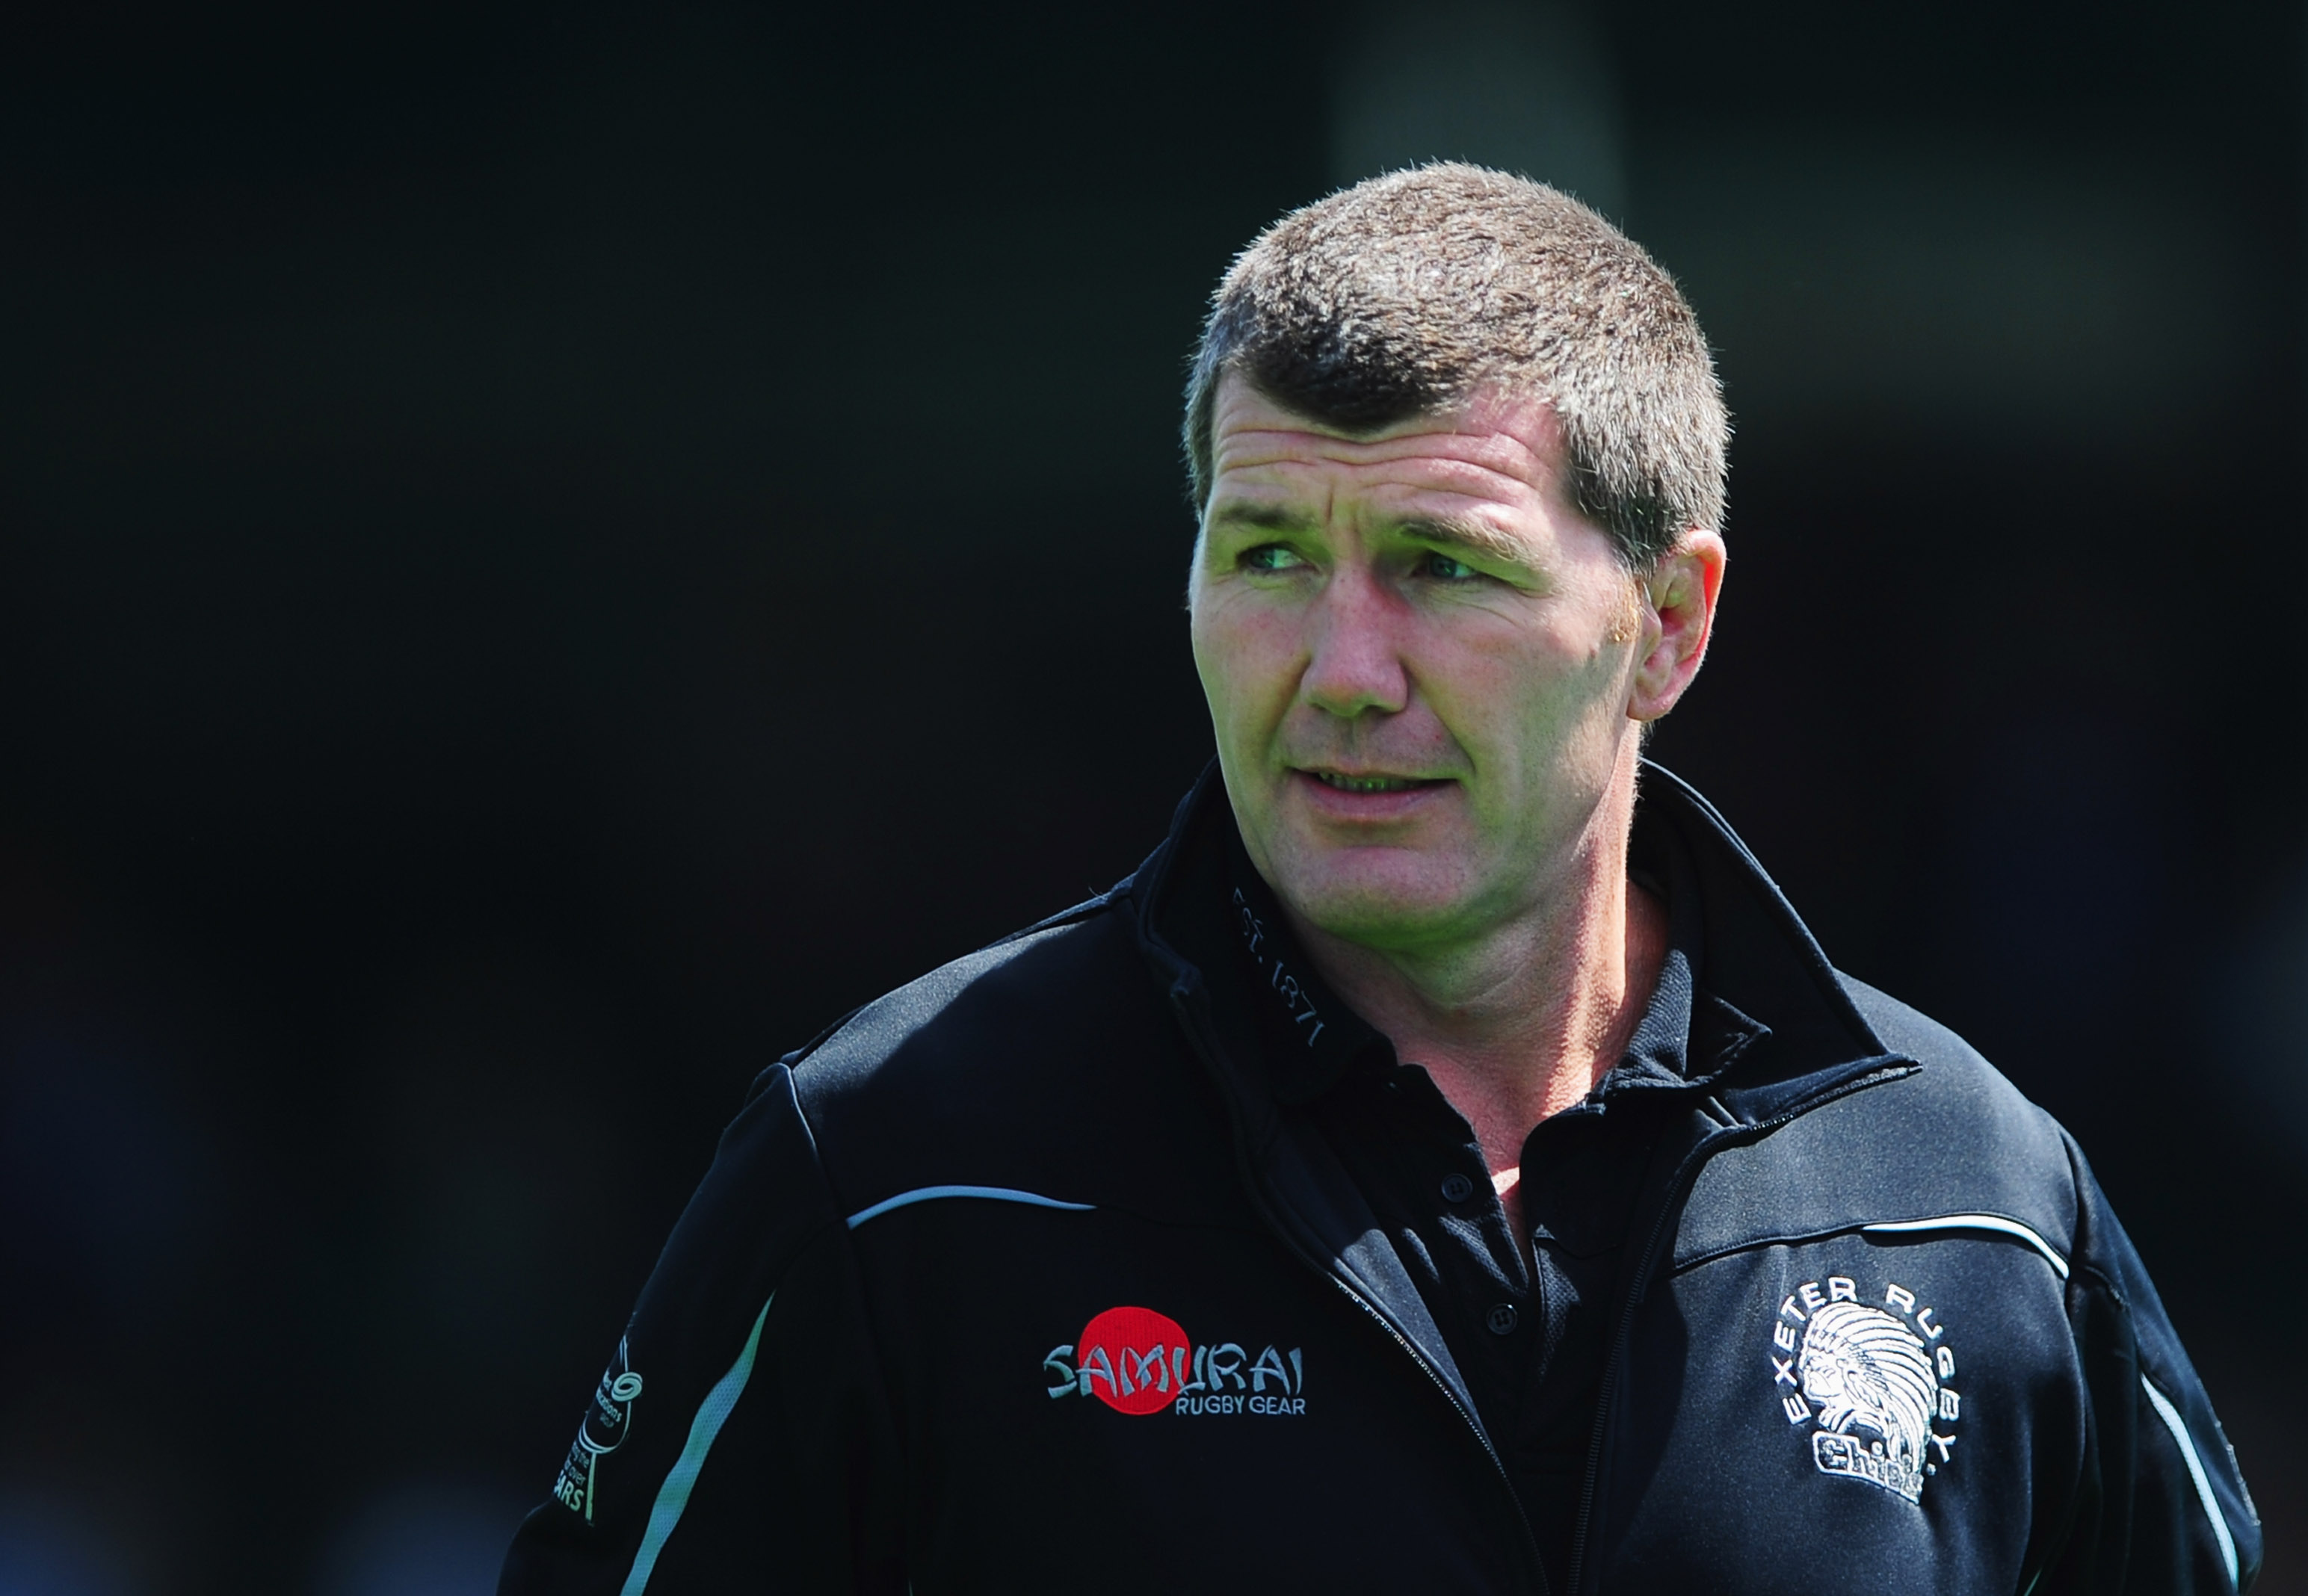 BARNET, ENGLAND - MAY 10: Rob Baxter head coach of Exeter Chiefs looks on prior to the Aviva Premiership match between Saracens and Exeter Chiefs at Allianz Park on May 10, 2015 in Barnet, England. (Photo by Dan Mullan/Getty Images)